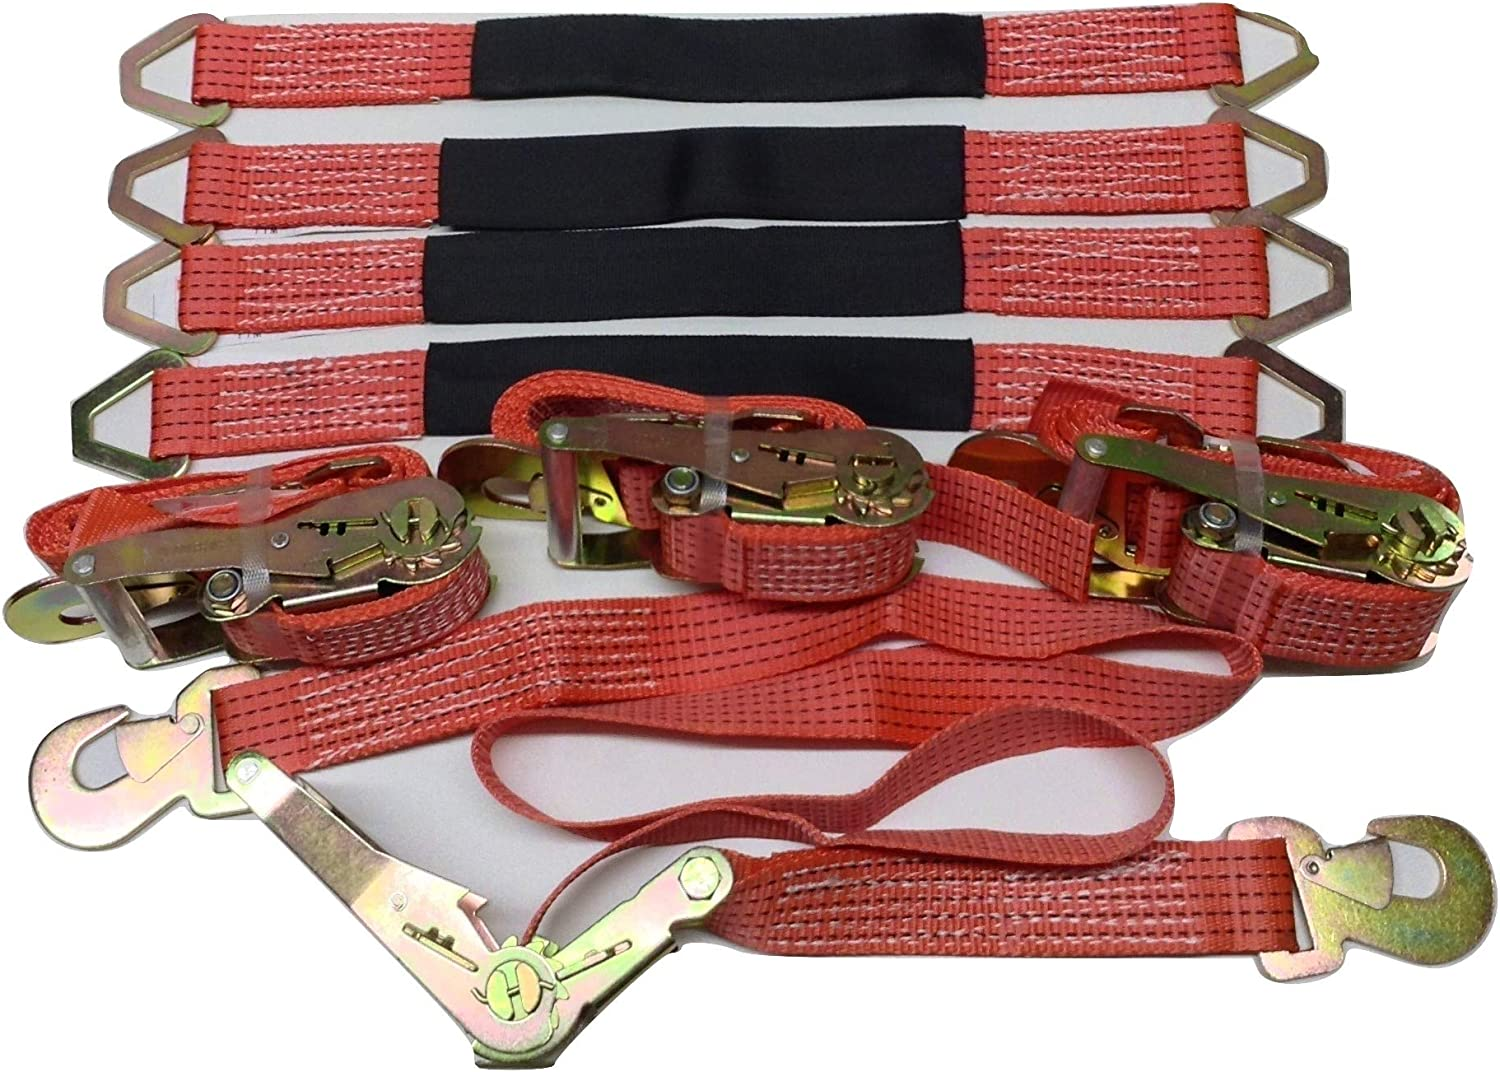 4 Axle Strap Tie Downs 24 Long and 4 Ratchet Tow Straps Car Haulers Red